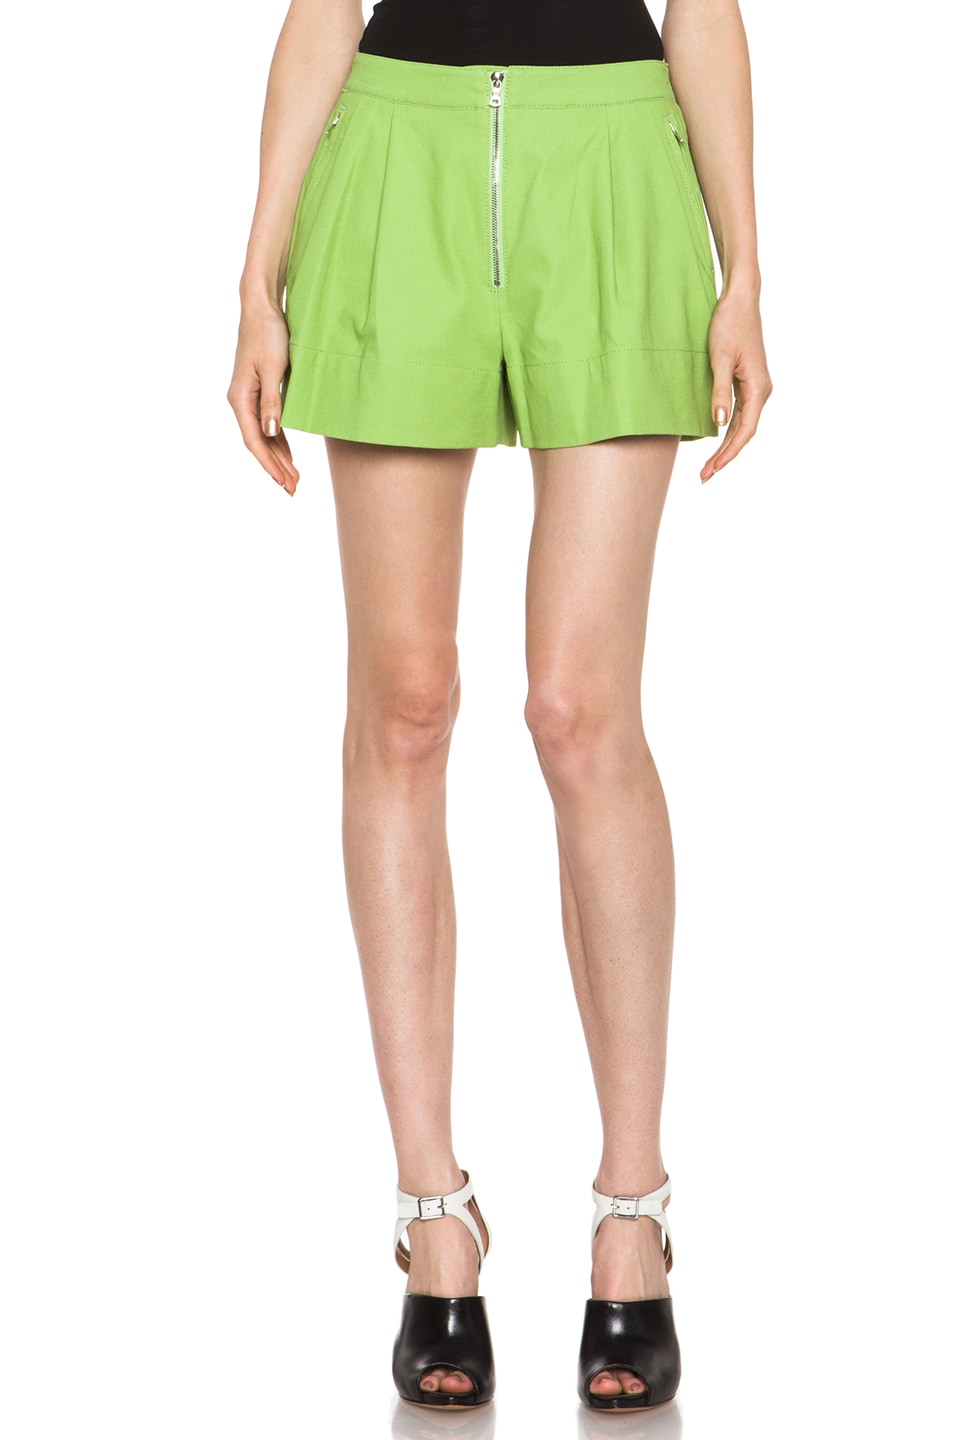 Image 1 of 3.1 phillip lim Bloomer Linen-Blend Short in Avocado Sld